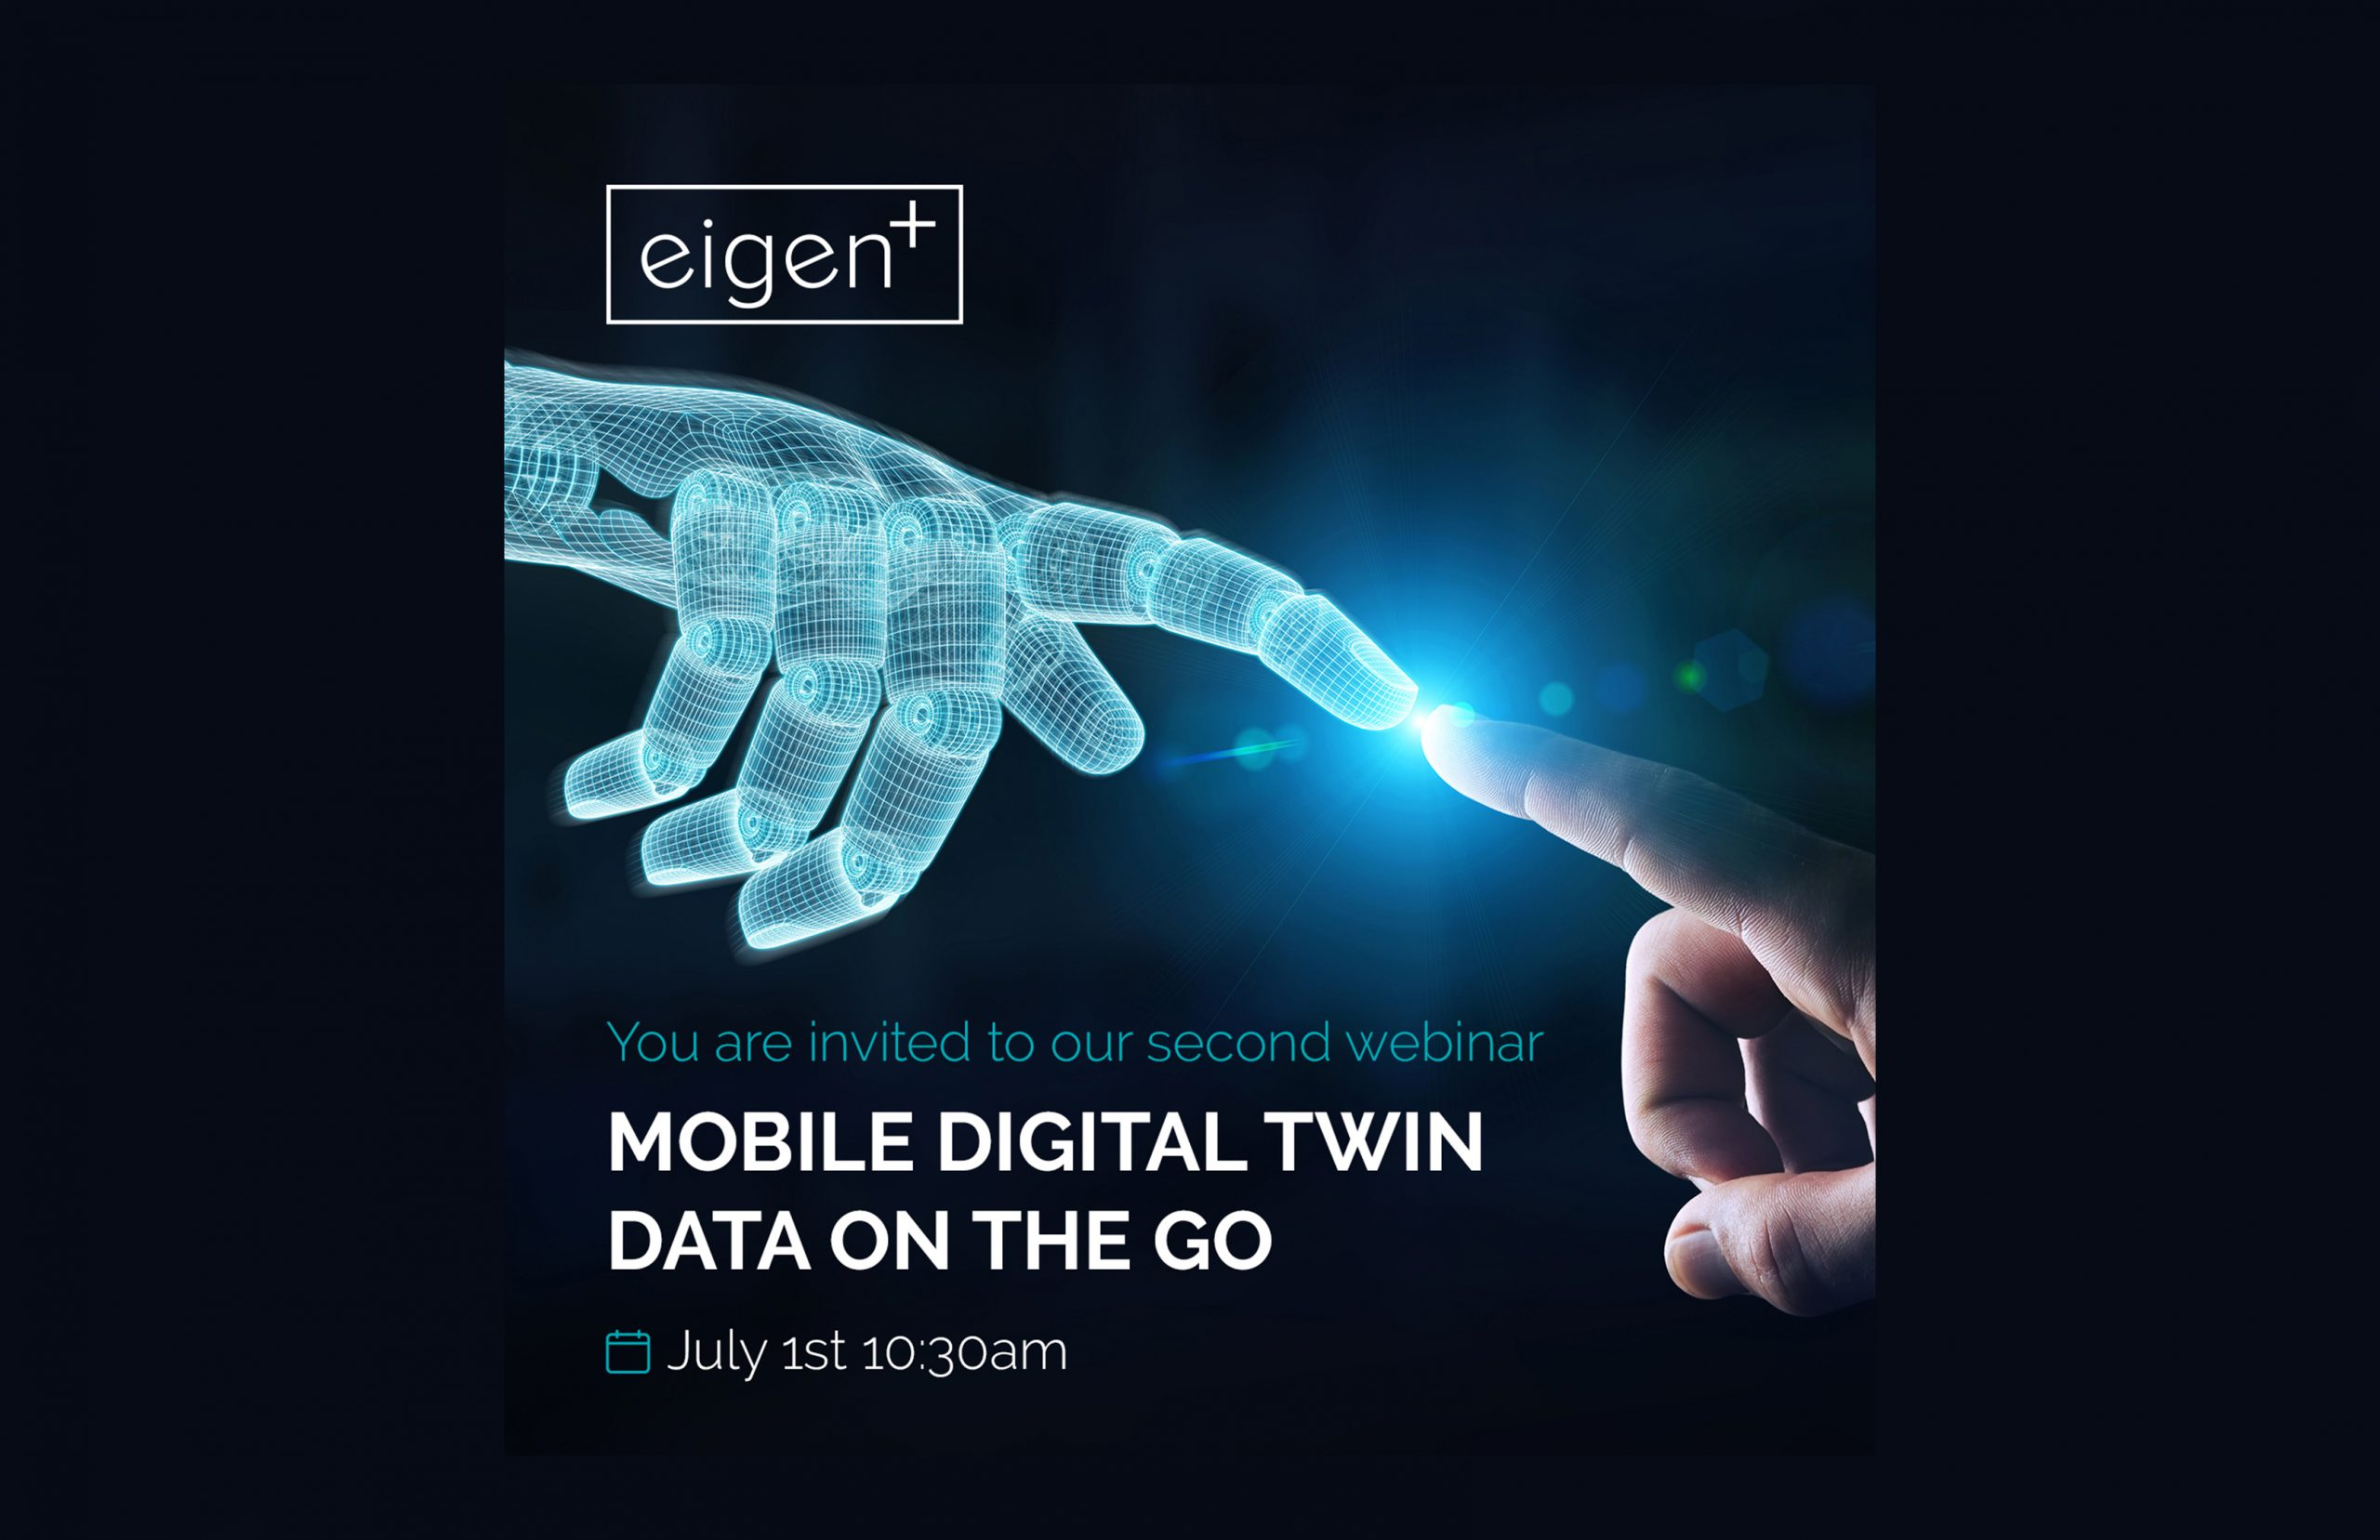 Mobile Digital Twin - Data on the Go